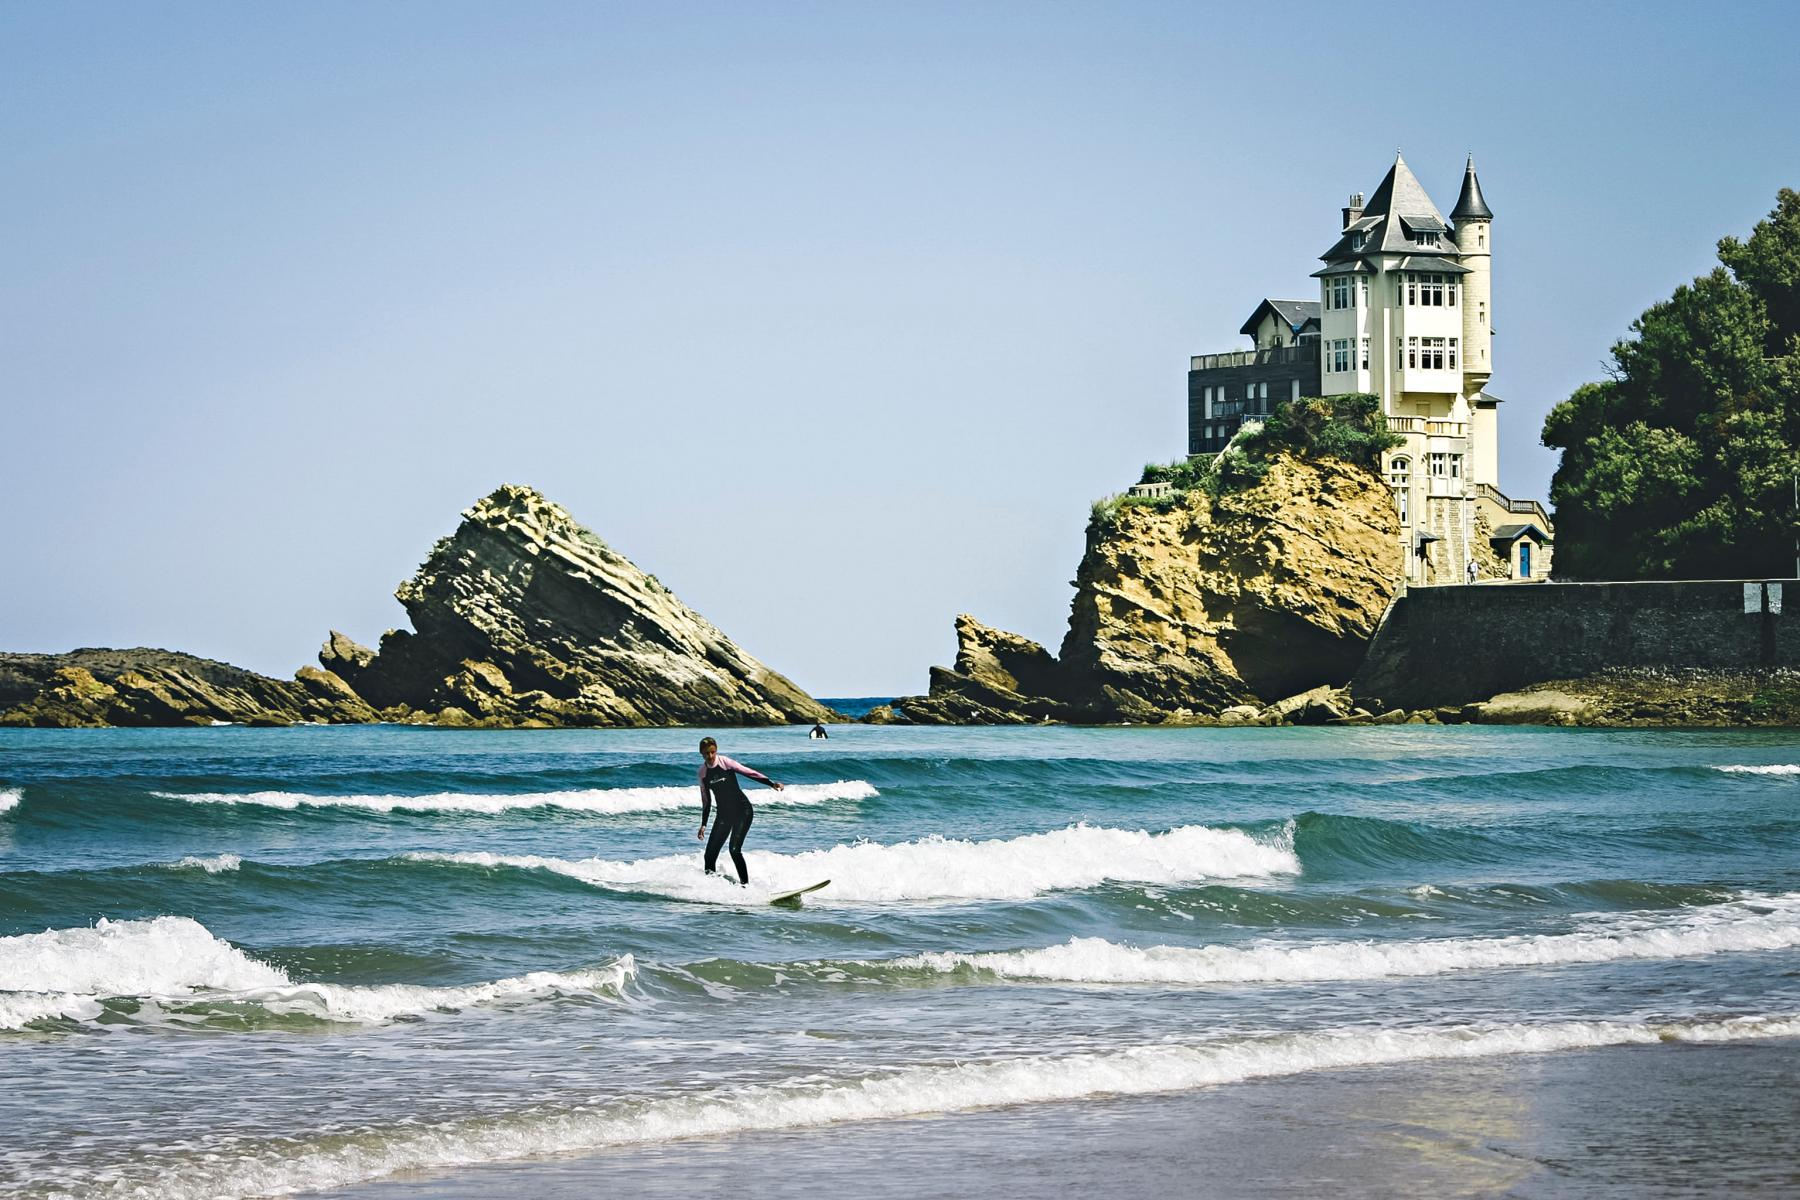 Most famous beach - Biarritz